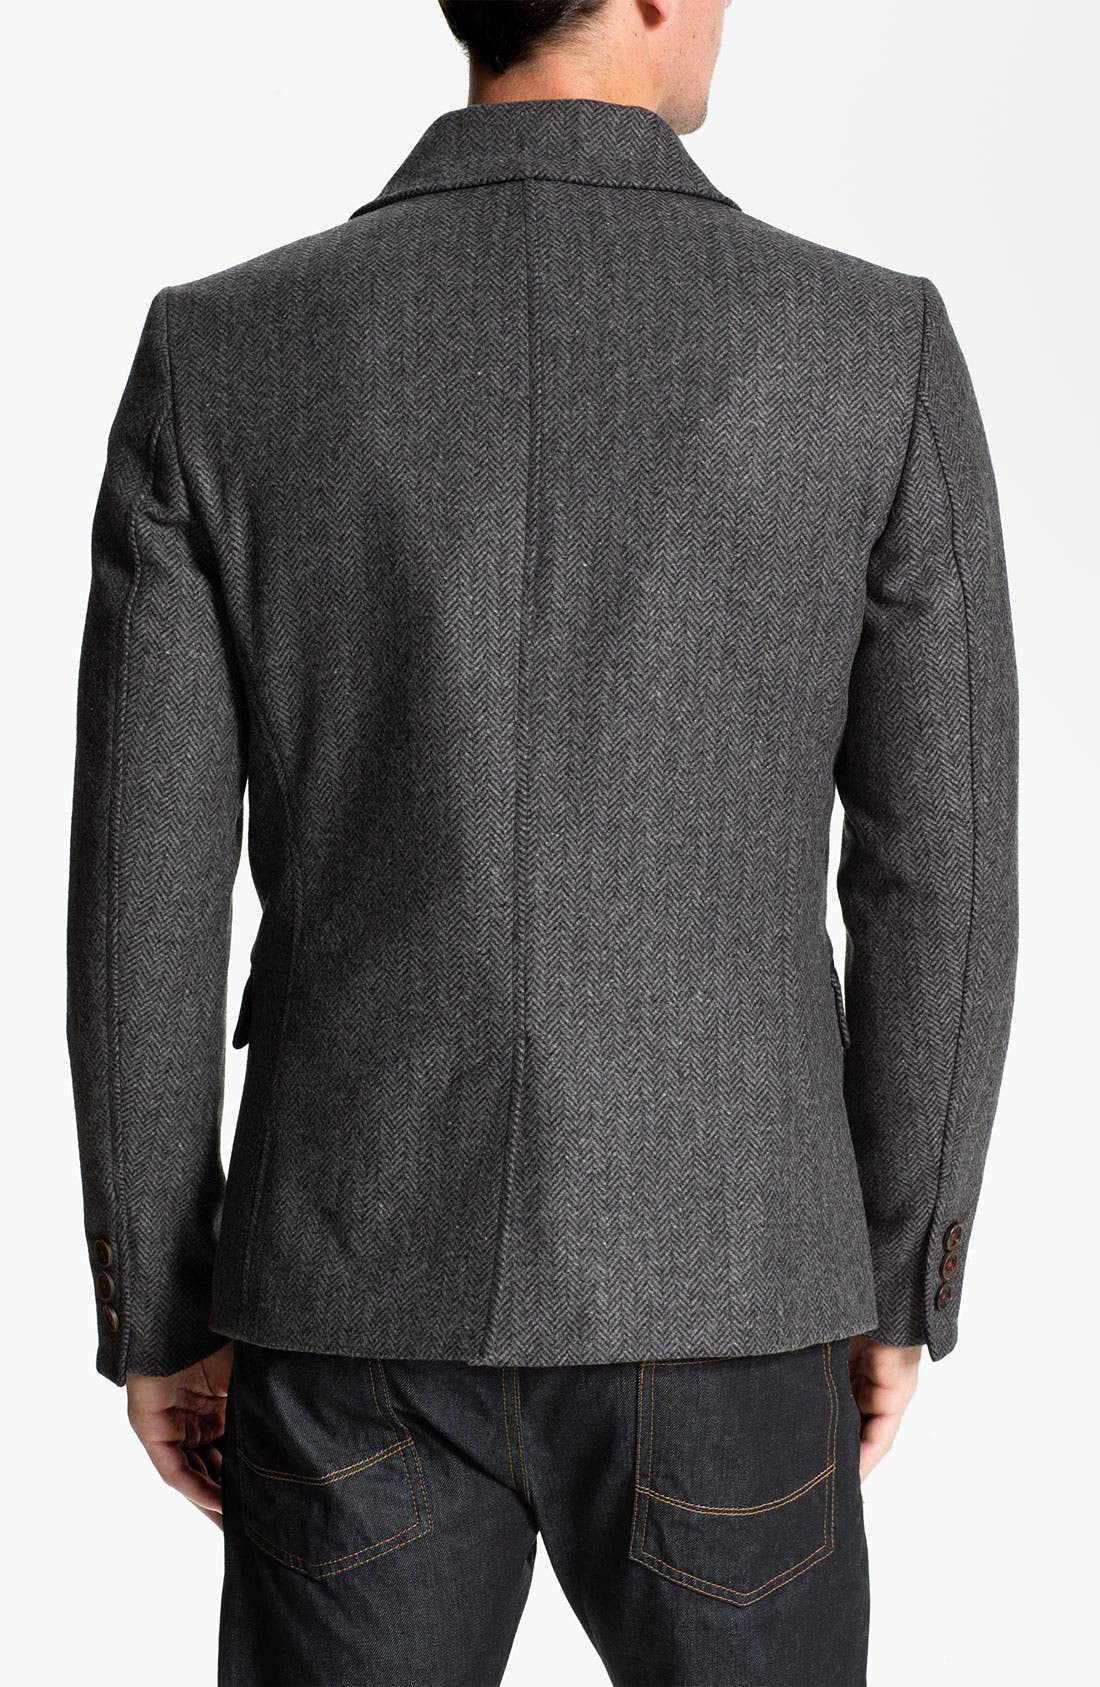 'Ananic' Shawl Collar Wool Blend Blazer,                             Alternate thumbnail 3, color,                             020